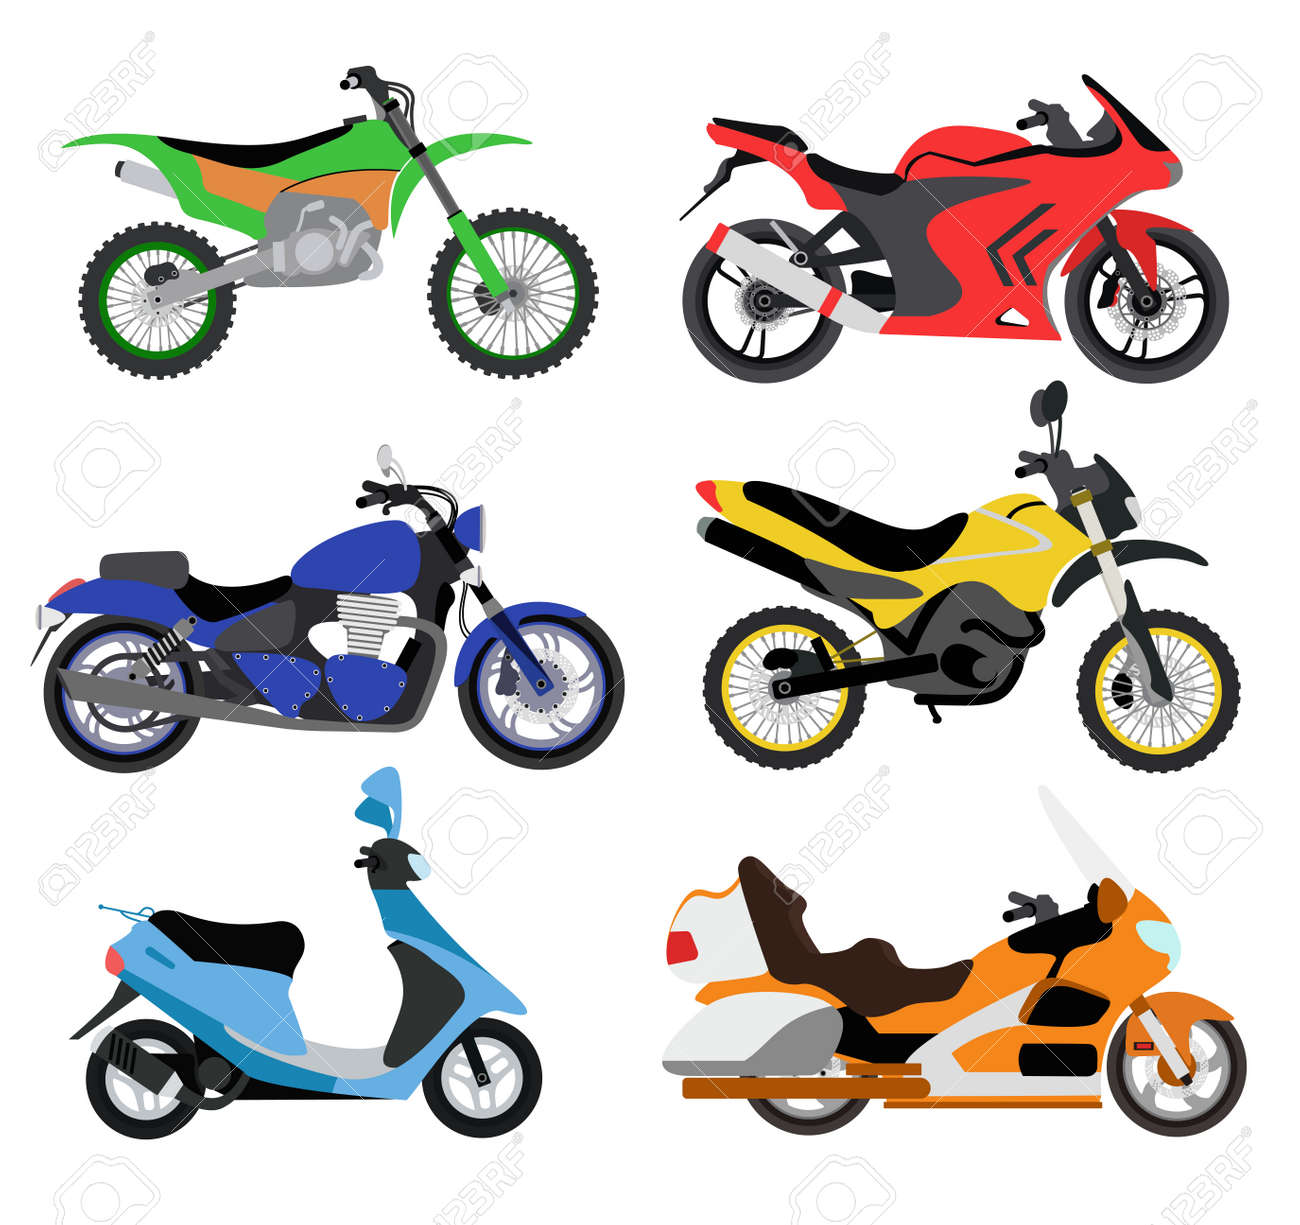 hight resolution of vector motorcycles illustration motorcycles isolated on white background cross bike sport bike